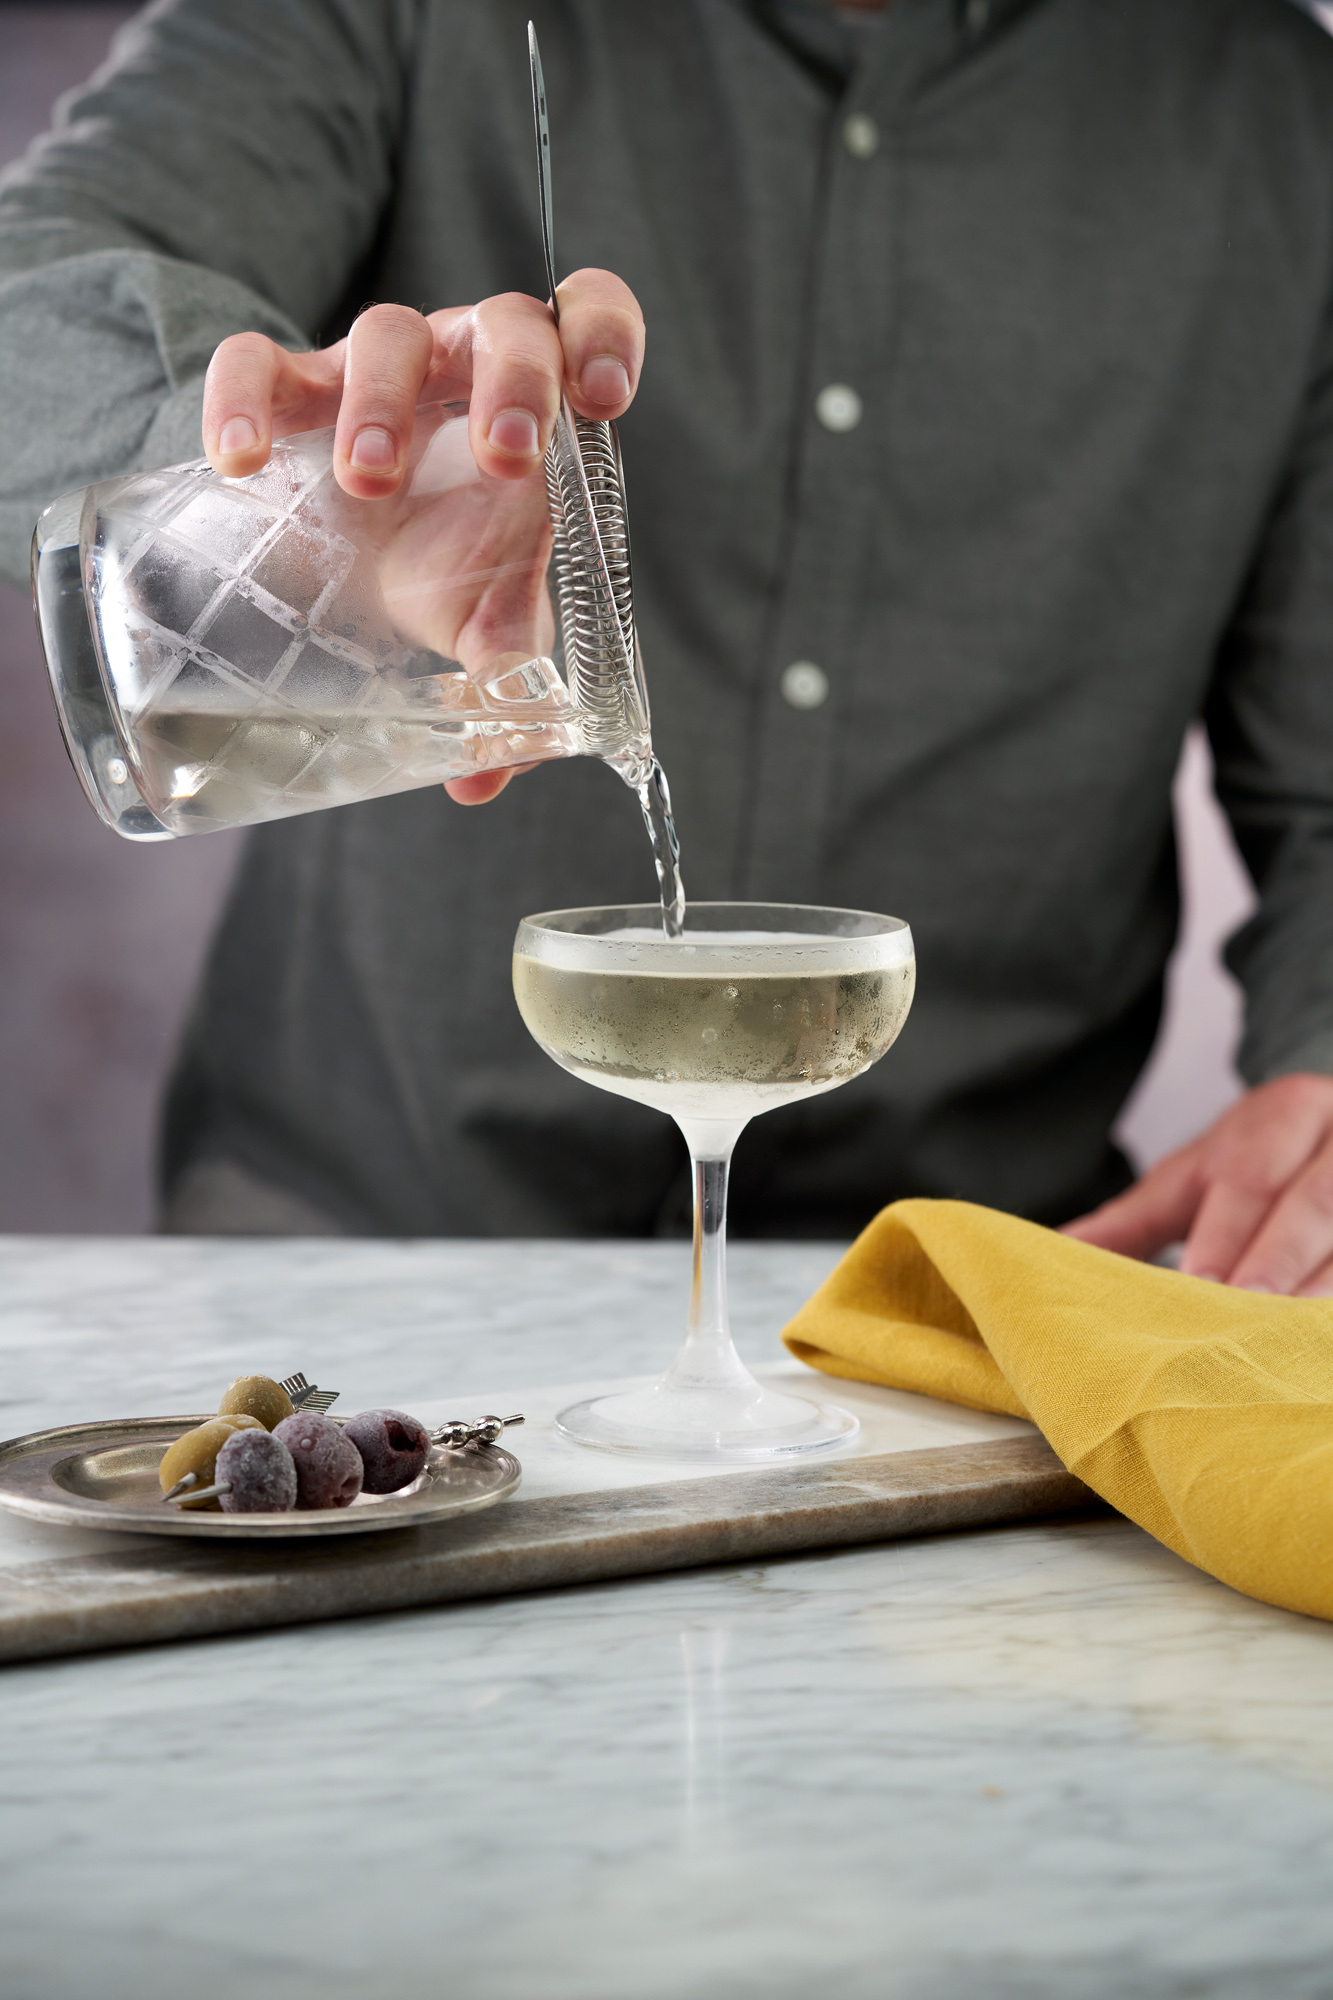 Martini being poured